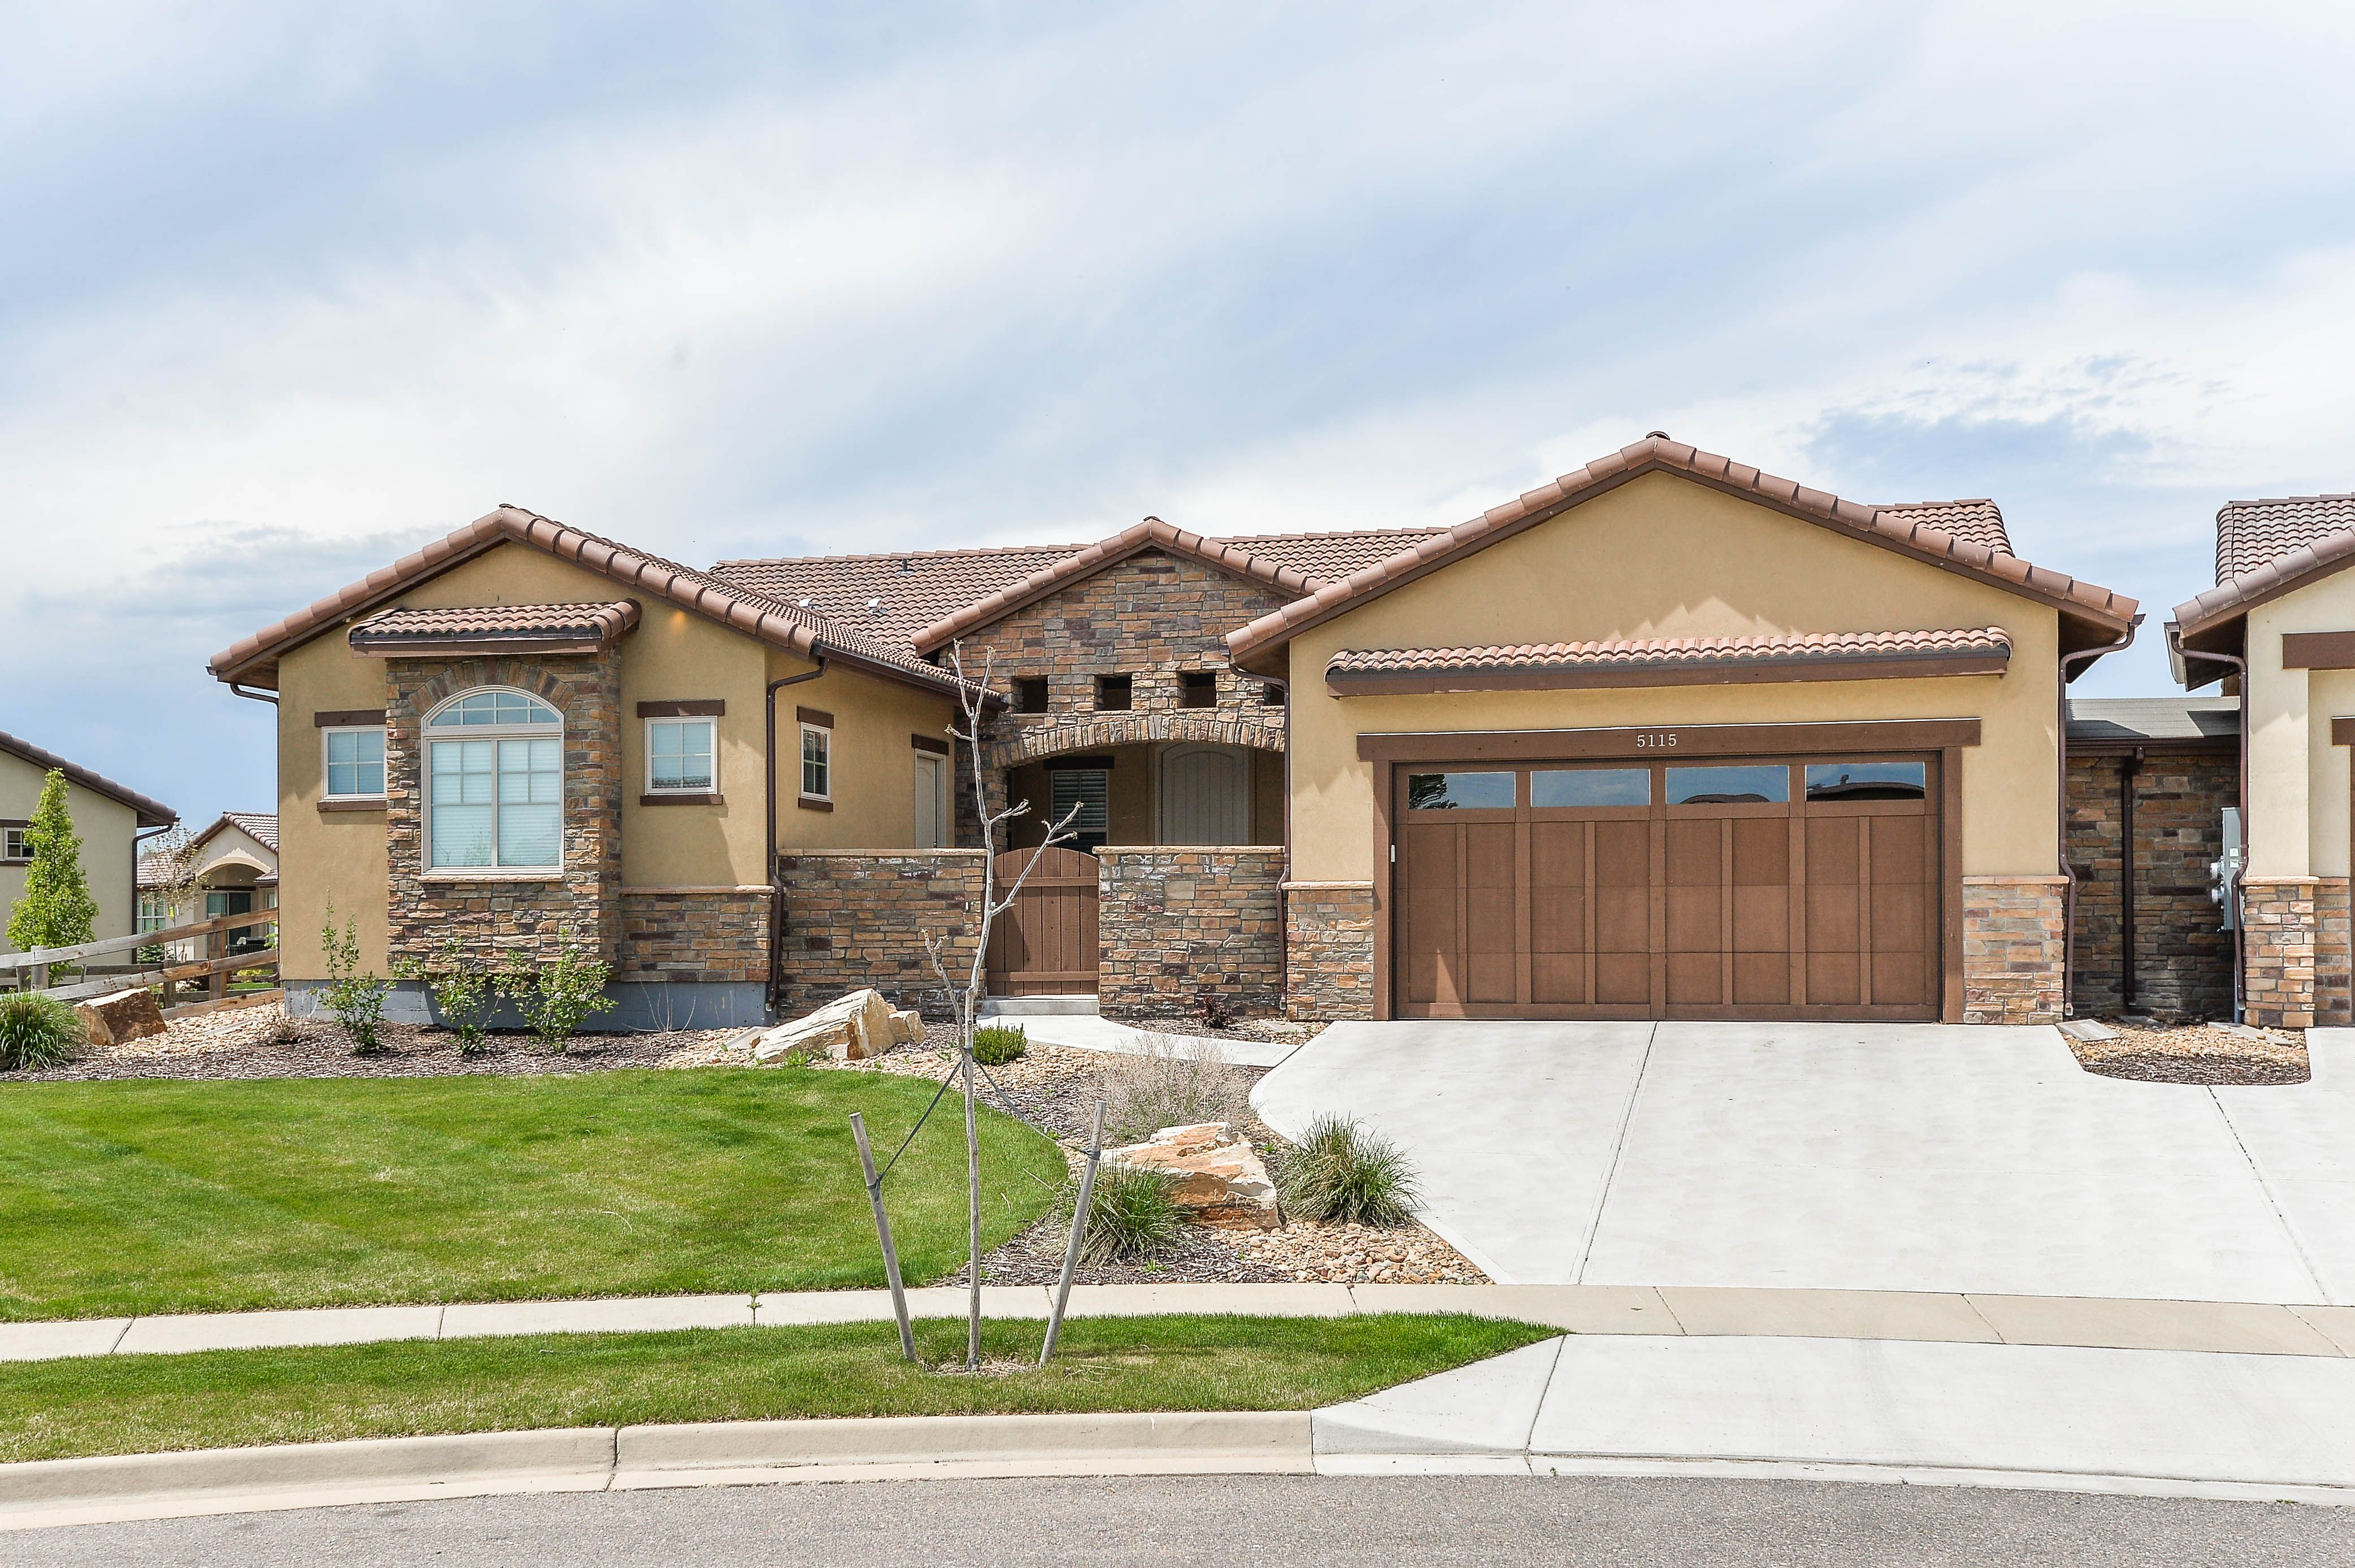 Here's the Brand-new Image Of Patio Homes for Sale Colorado